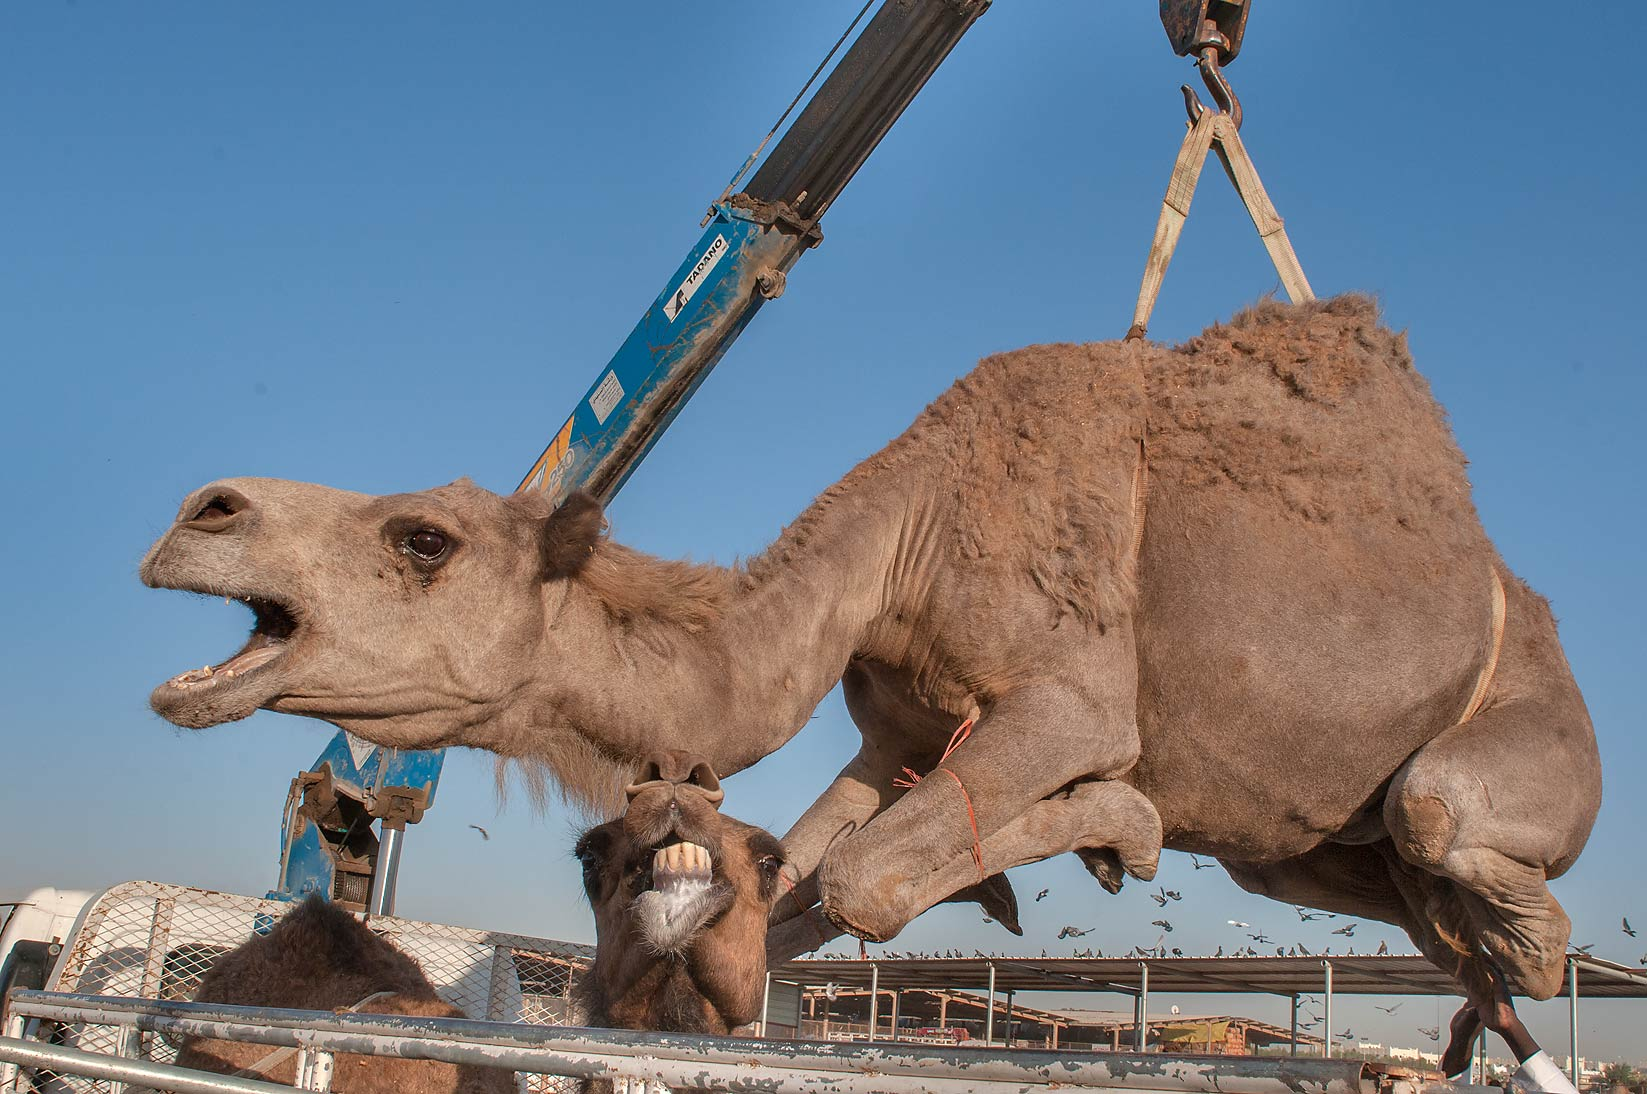 Camel moving by hydraulic crane in Livestock Market, Abu Hamour area. Doha, Qatar